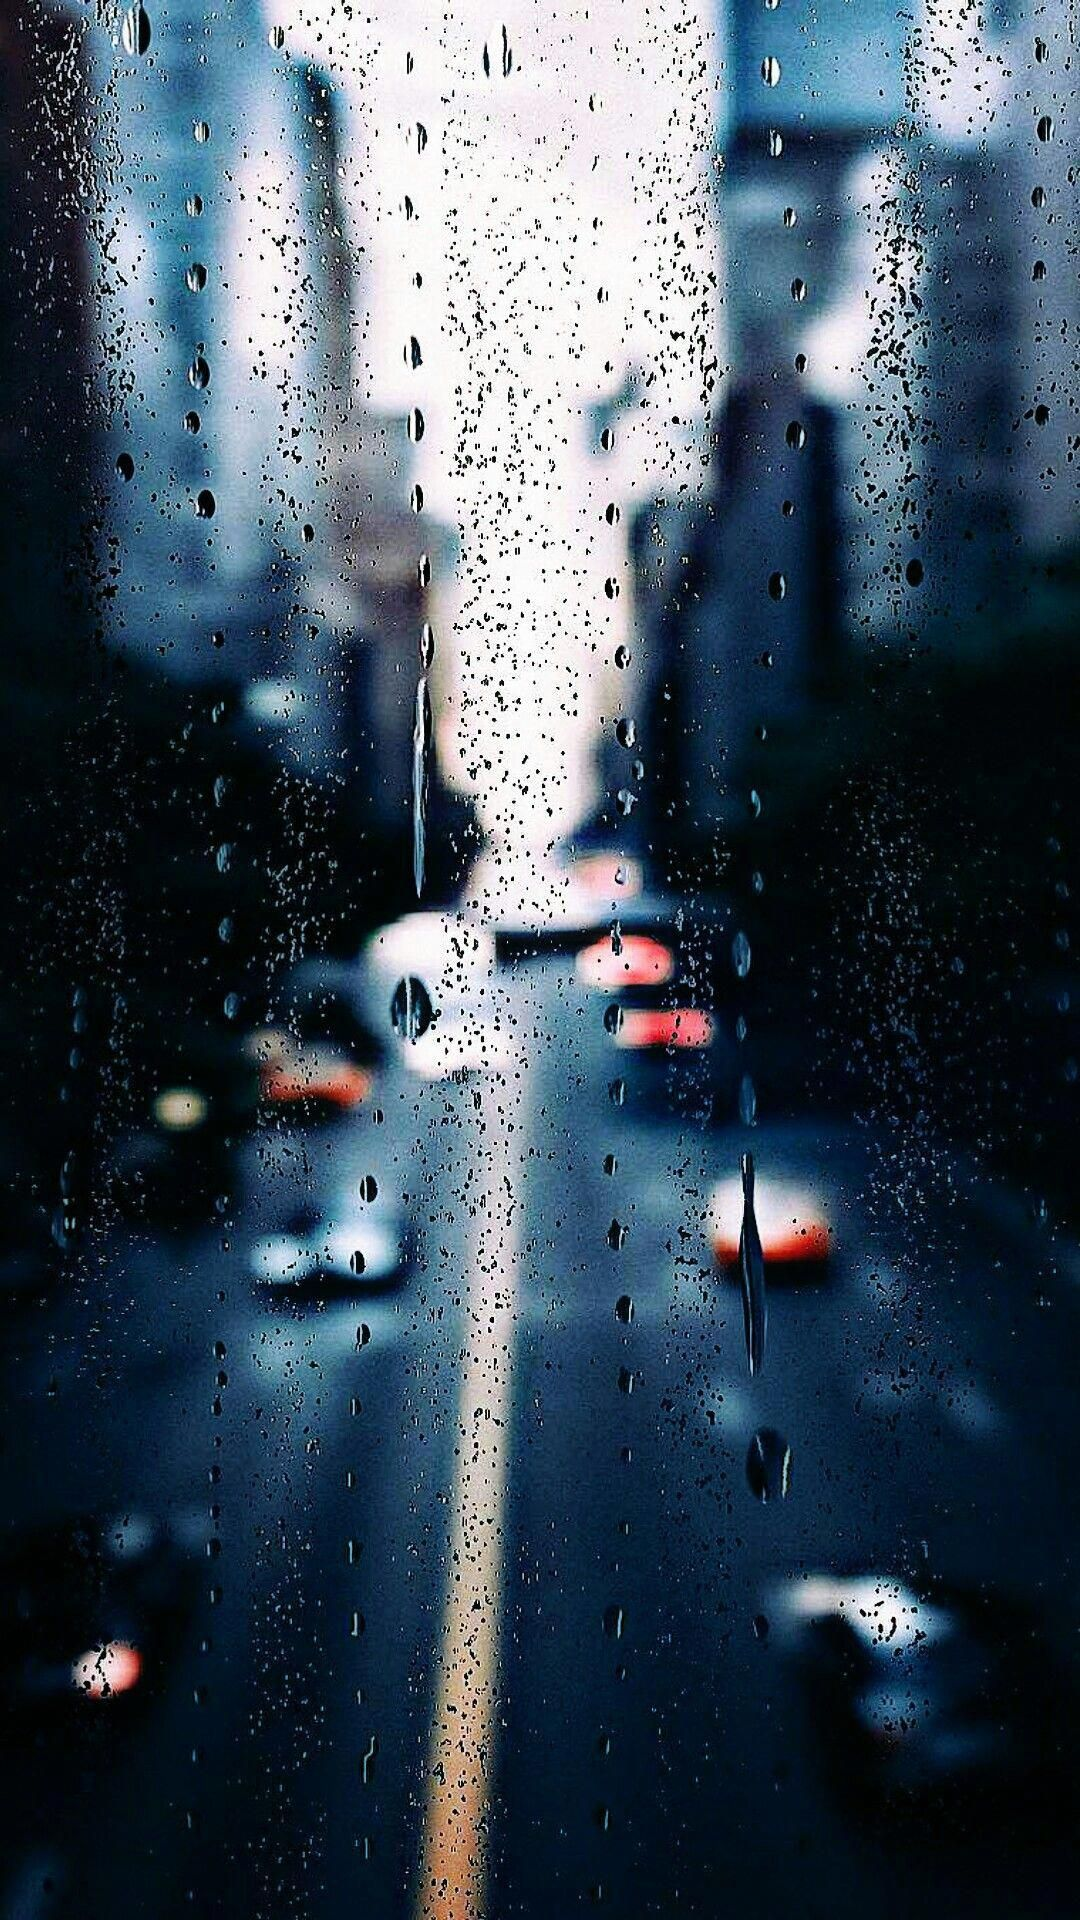 Pin By Bro And Sis On Amazing Photography With Images Rainy